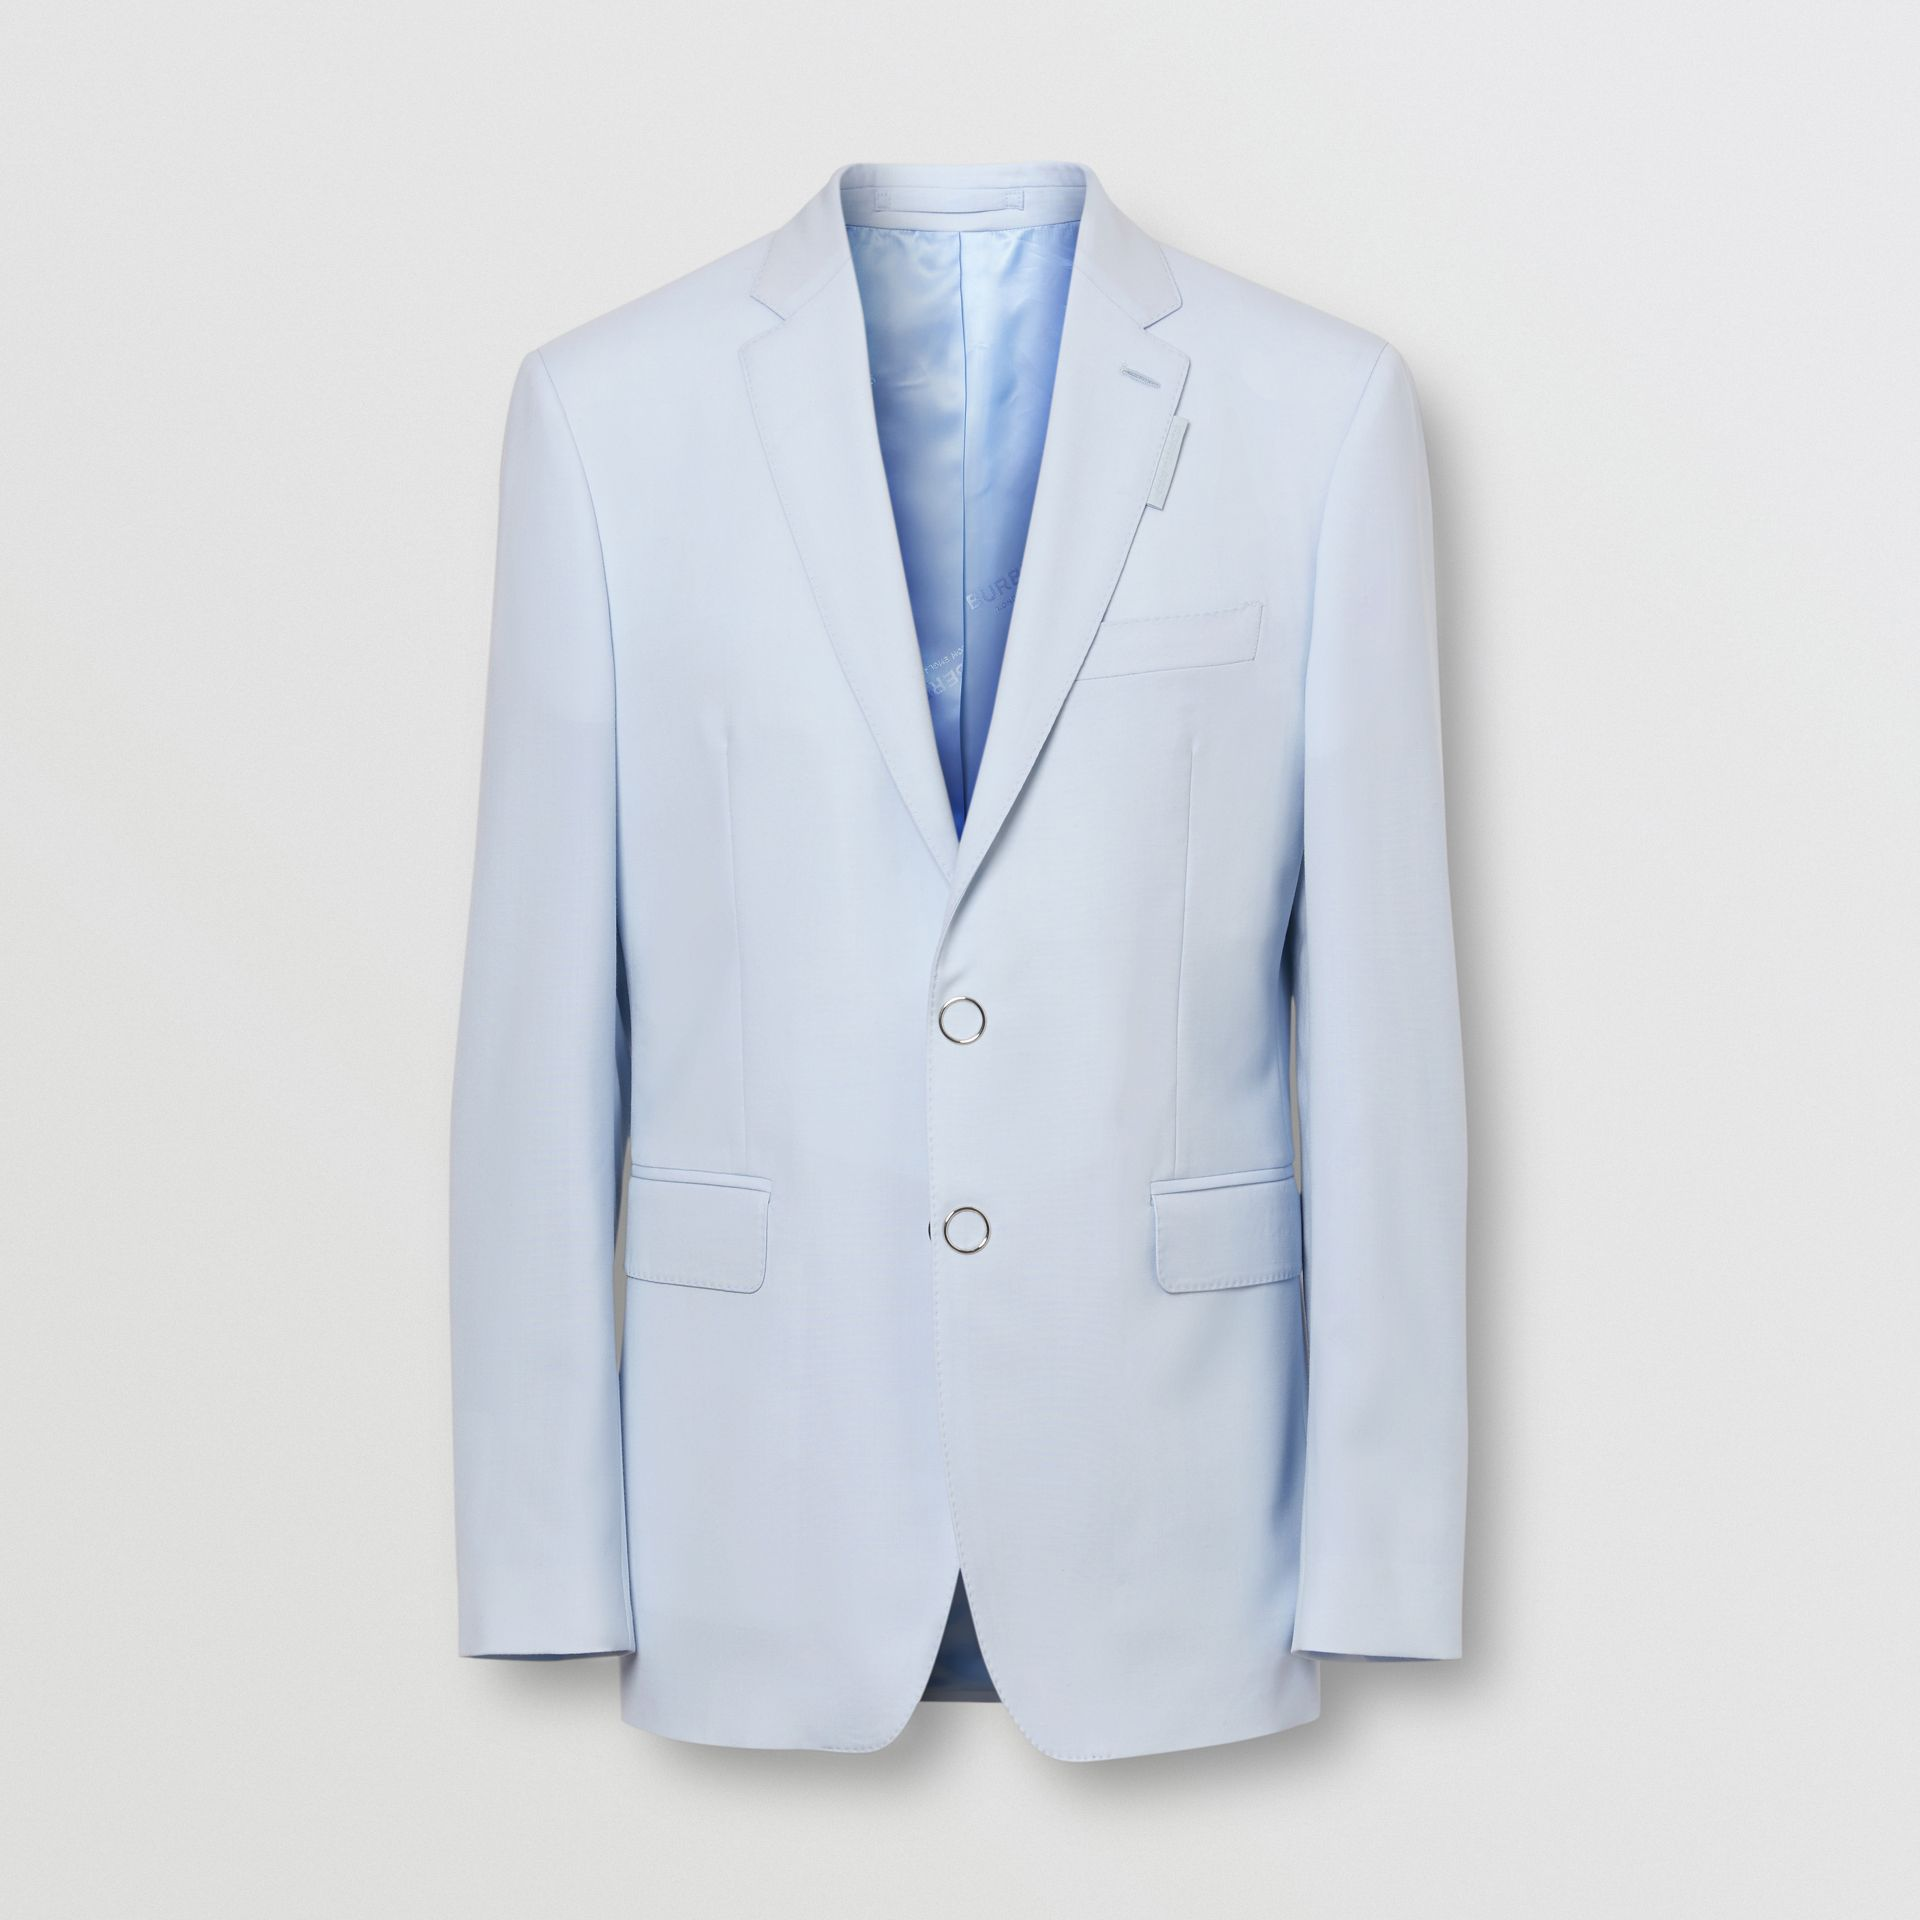 Slim Fit Press-stud Tumbled Wool Tailored Jacket in Pale Blue - Men | Burberry - gallery image 3